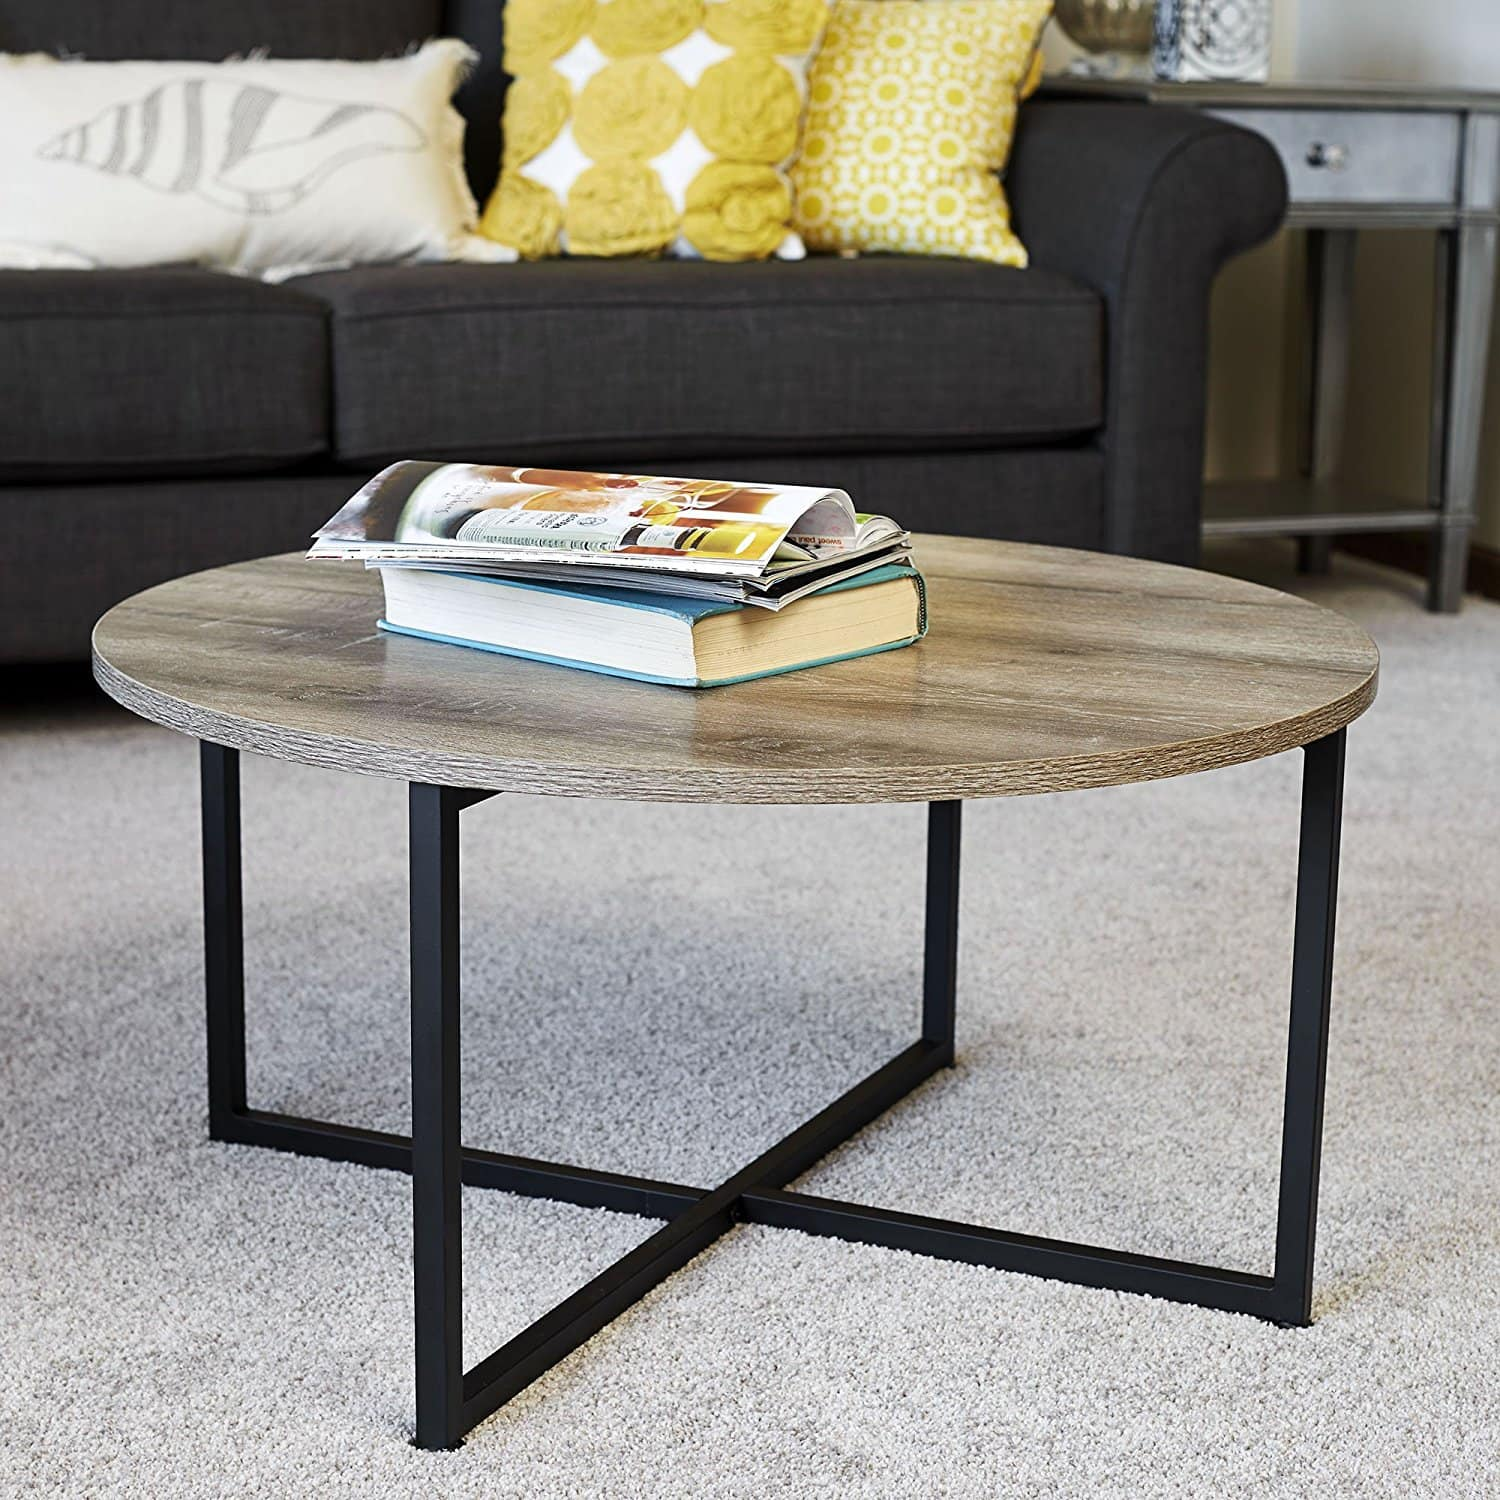 Round Coffee Table With Storage Singapore: Cheap Coffee Tables: The Ultimate Guide To Coffee Tables